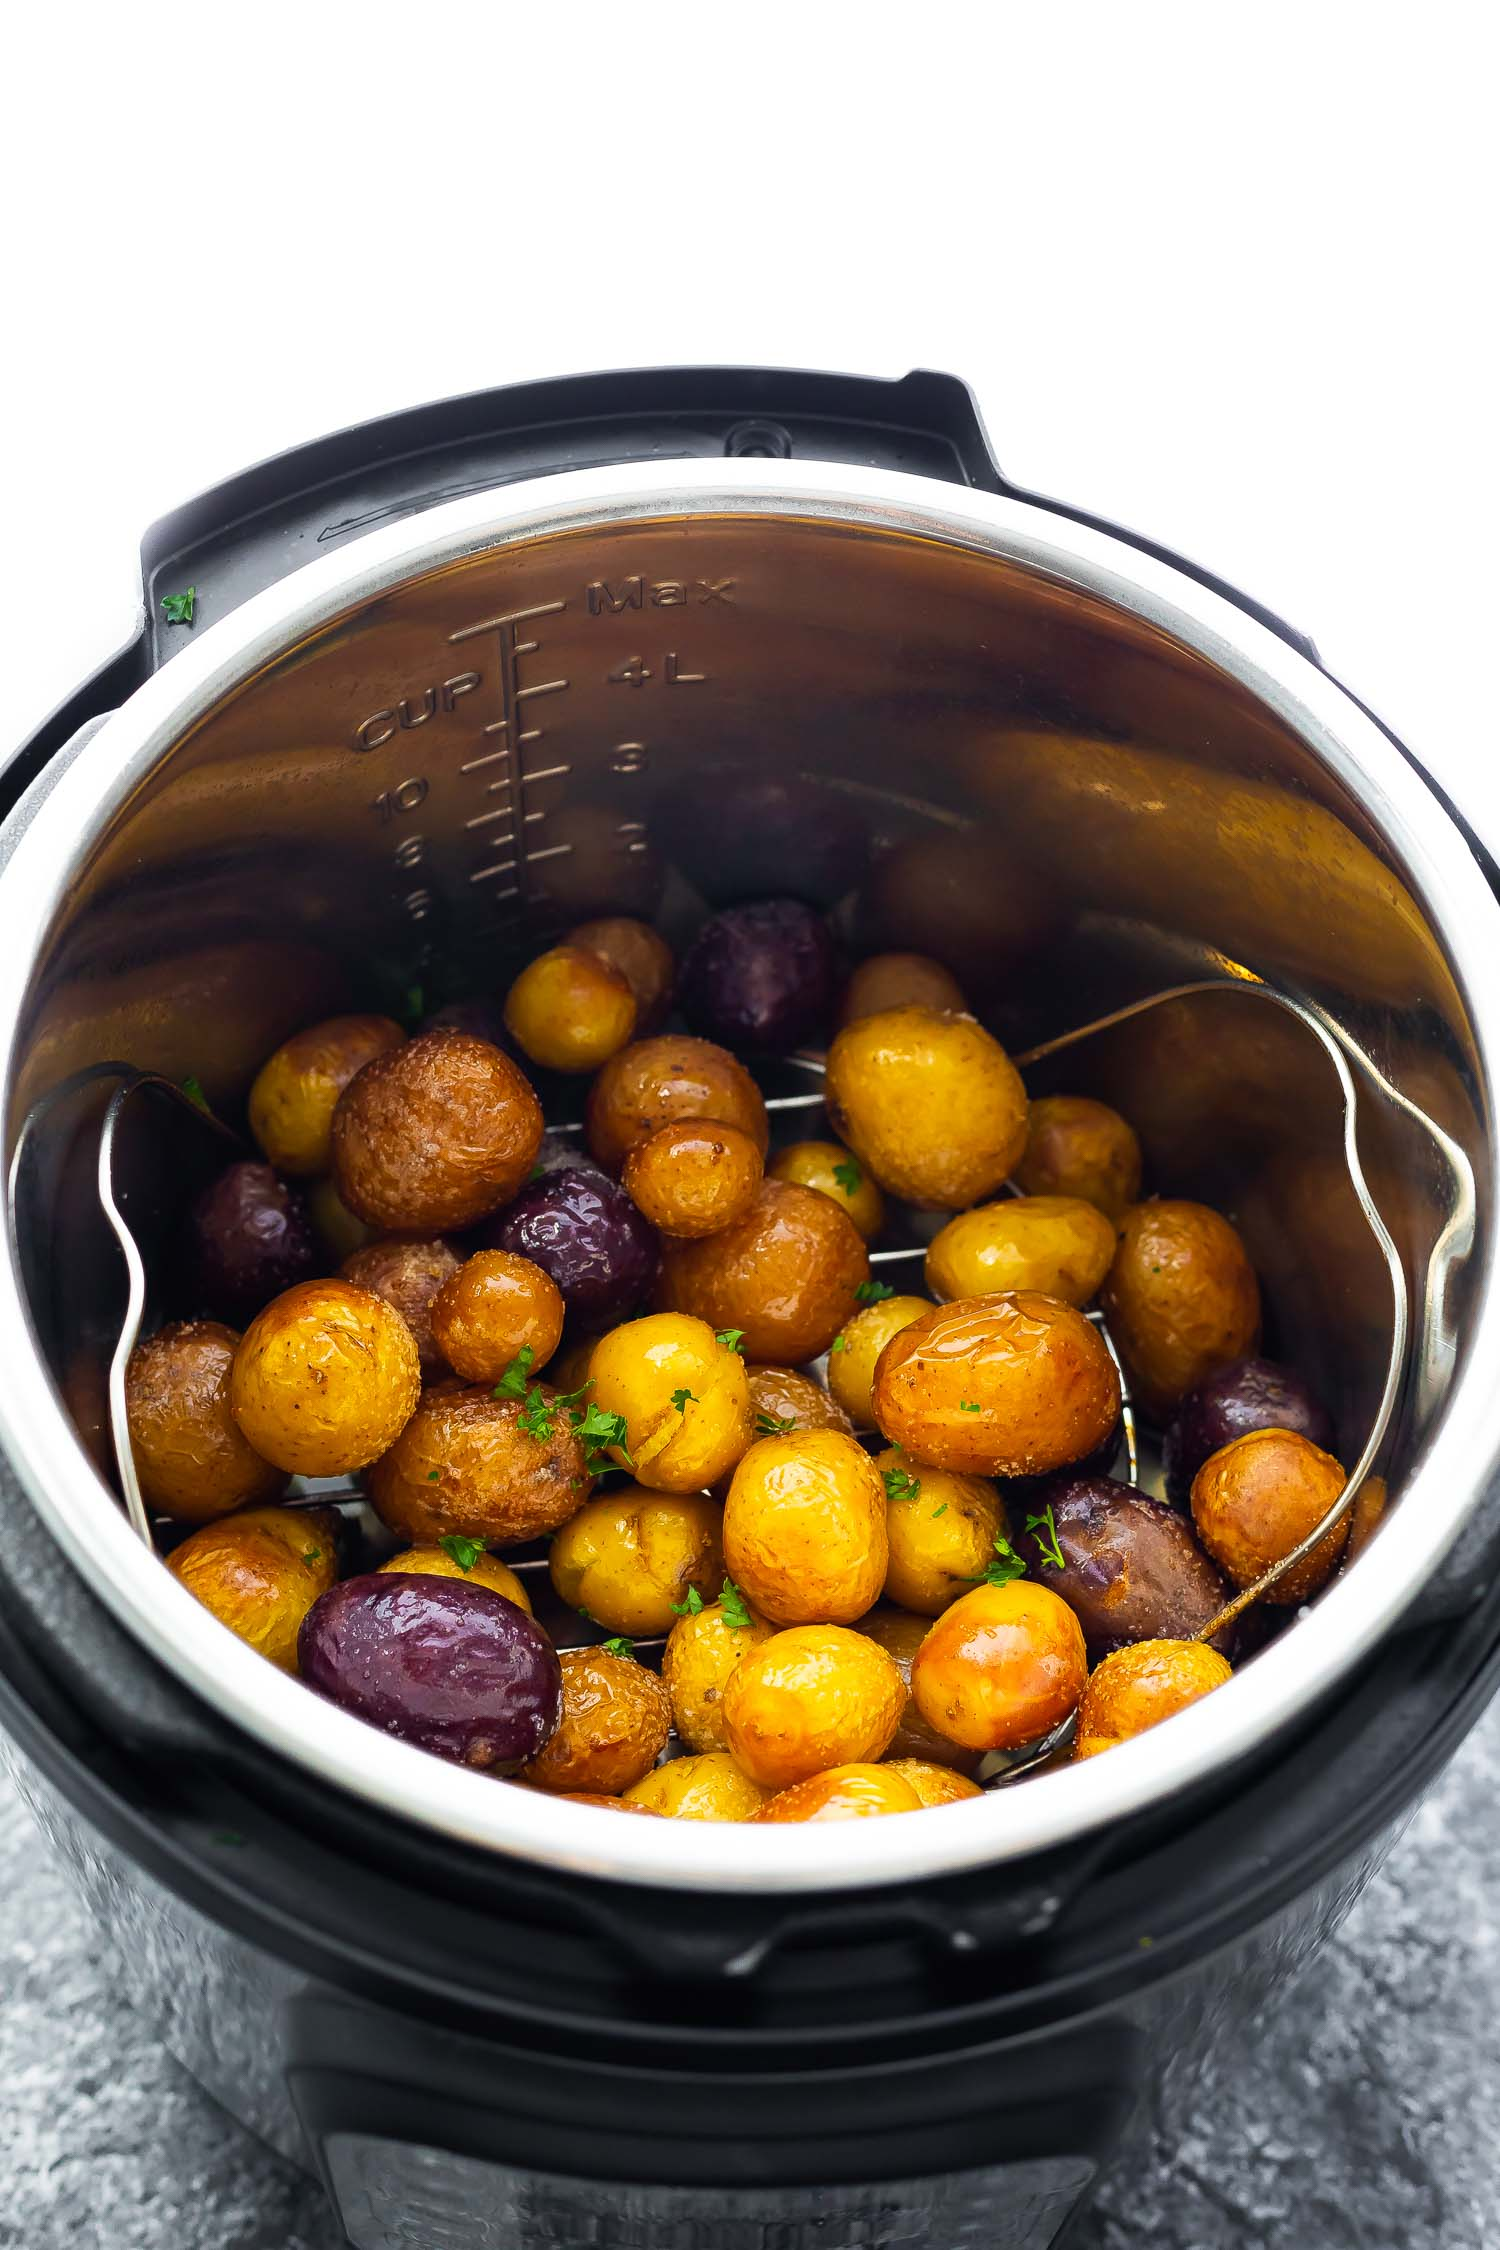 baby potatoes in instant pot after cooking and air frying